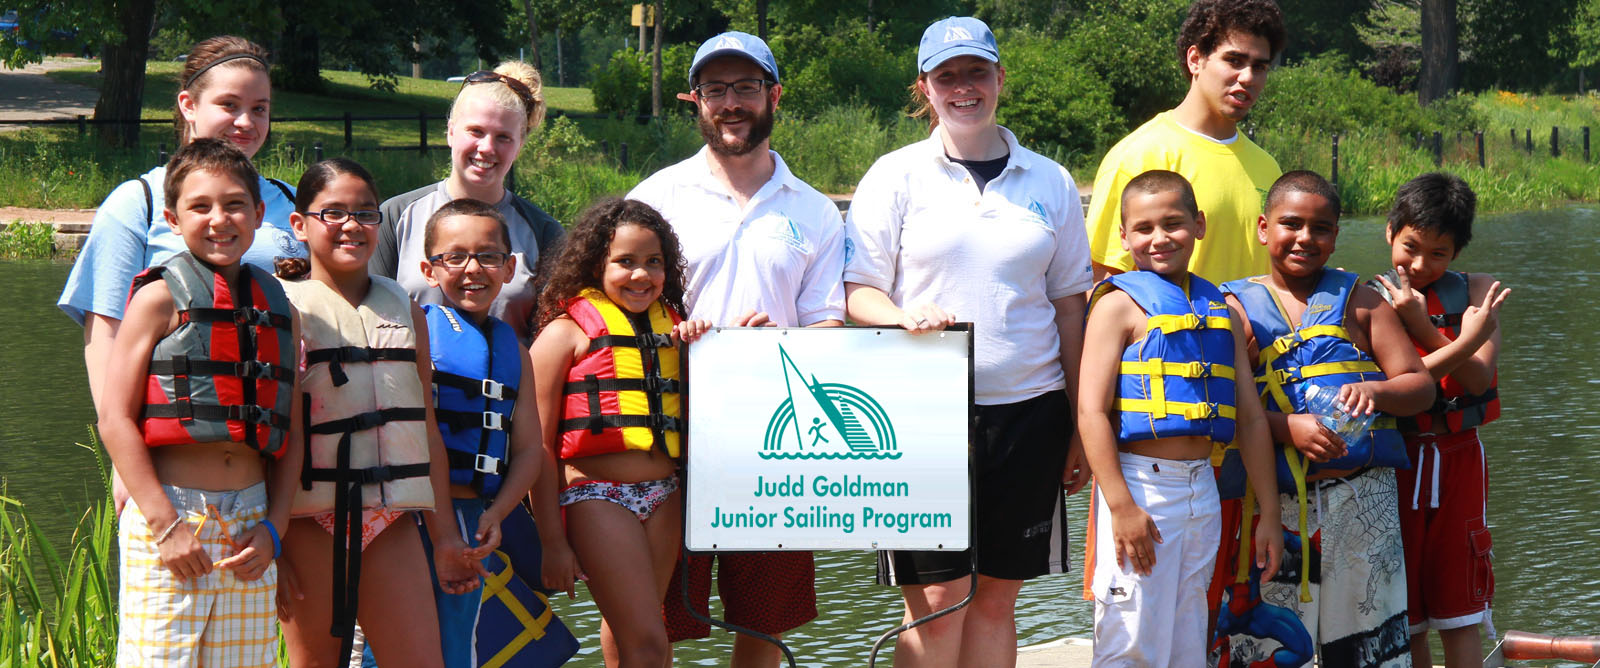 The Judd Goldman Junior Sailing Program